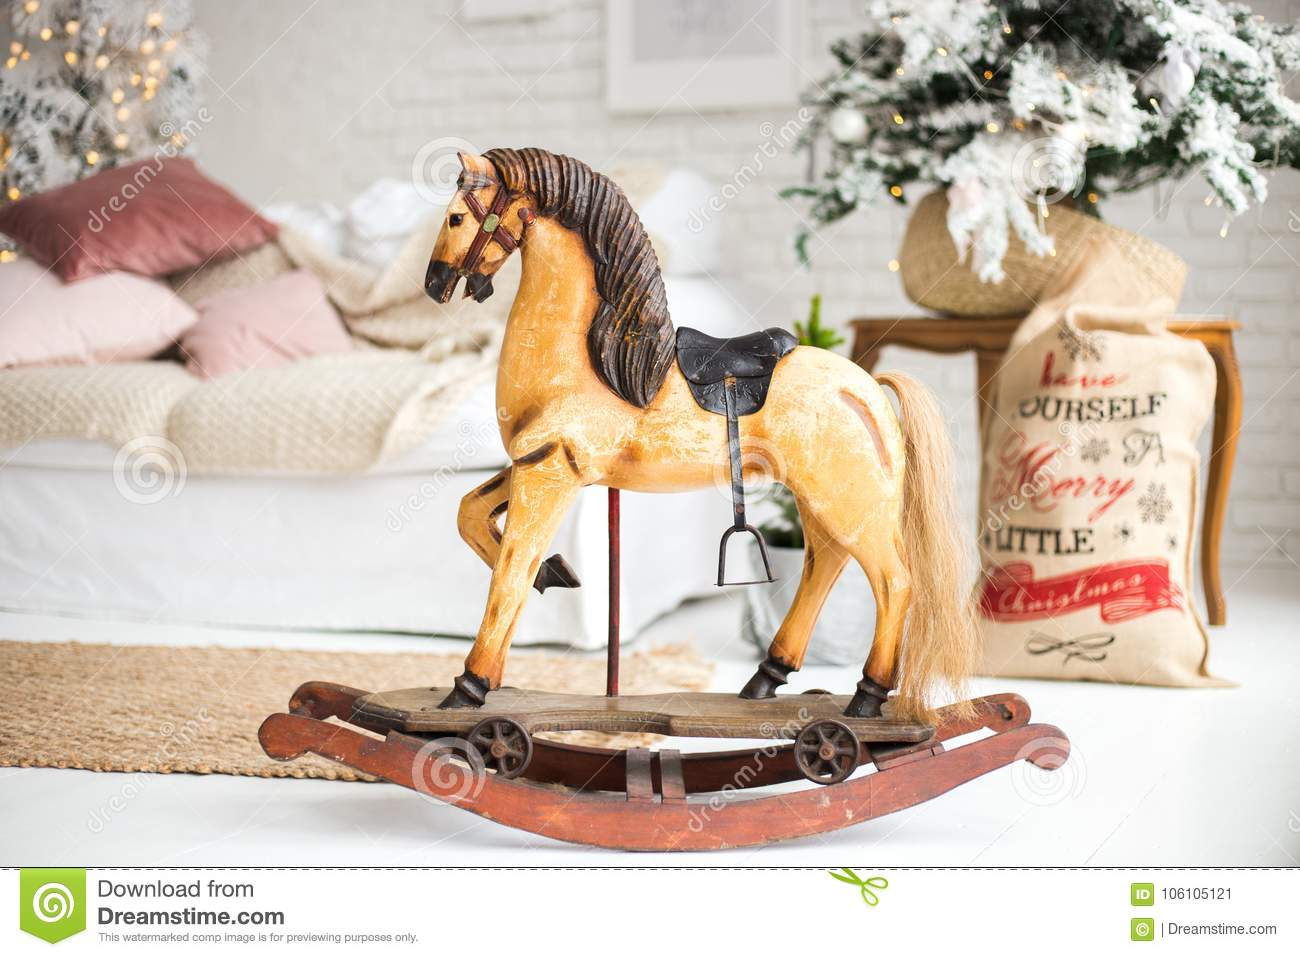 A wooden horse for Christmas. a gift for children.